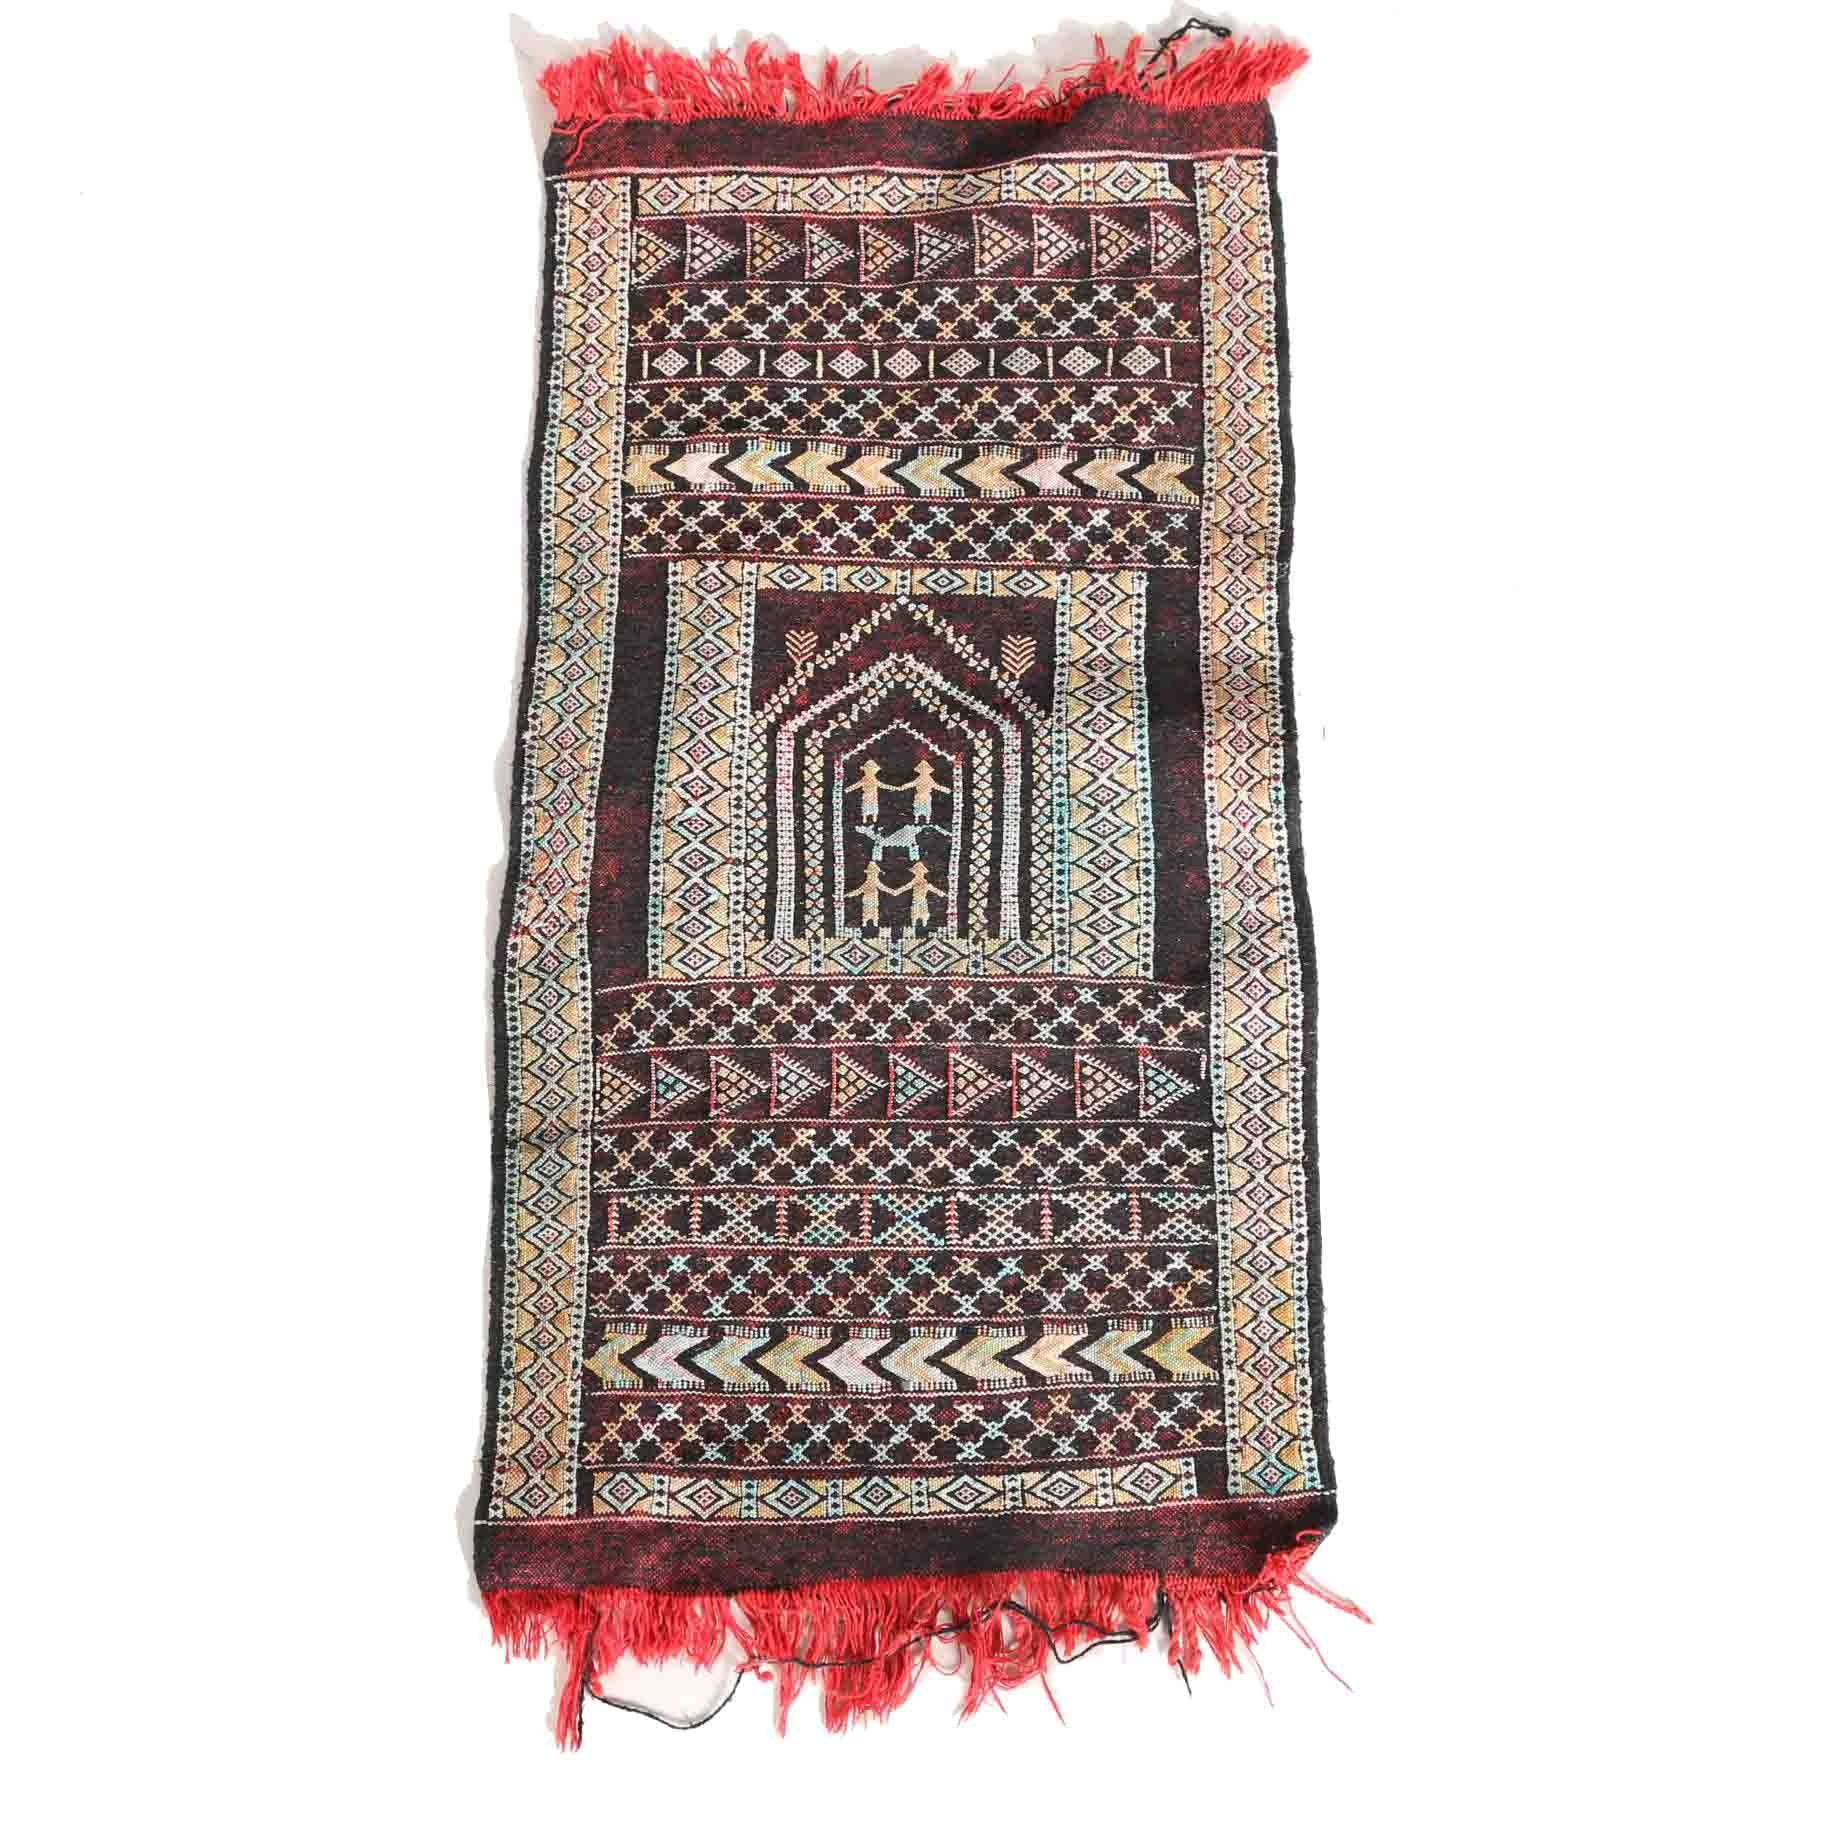 Handwoven and Embroidered Flat Weave Tribal Accent Rug